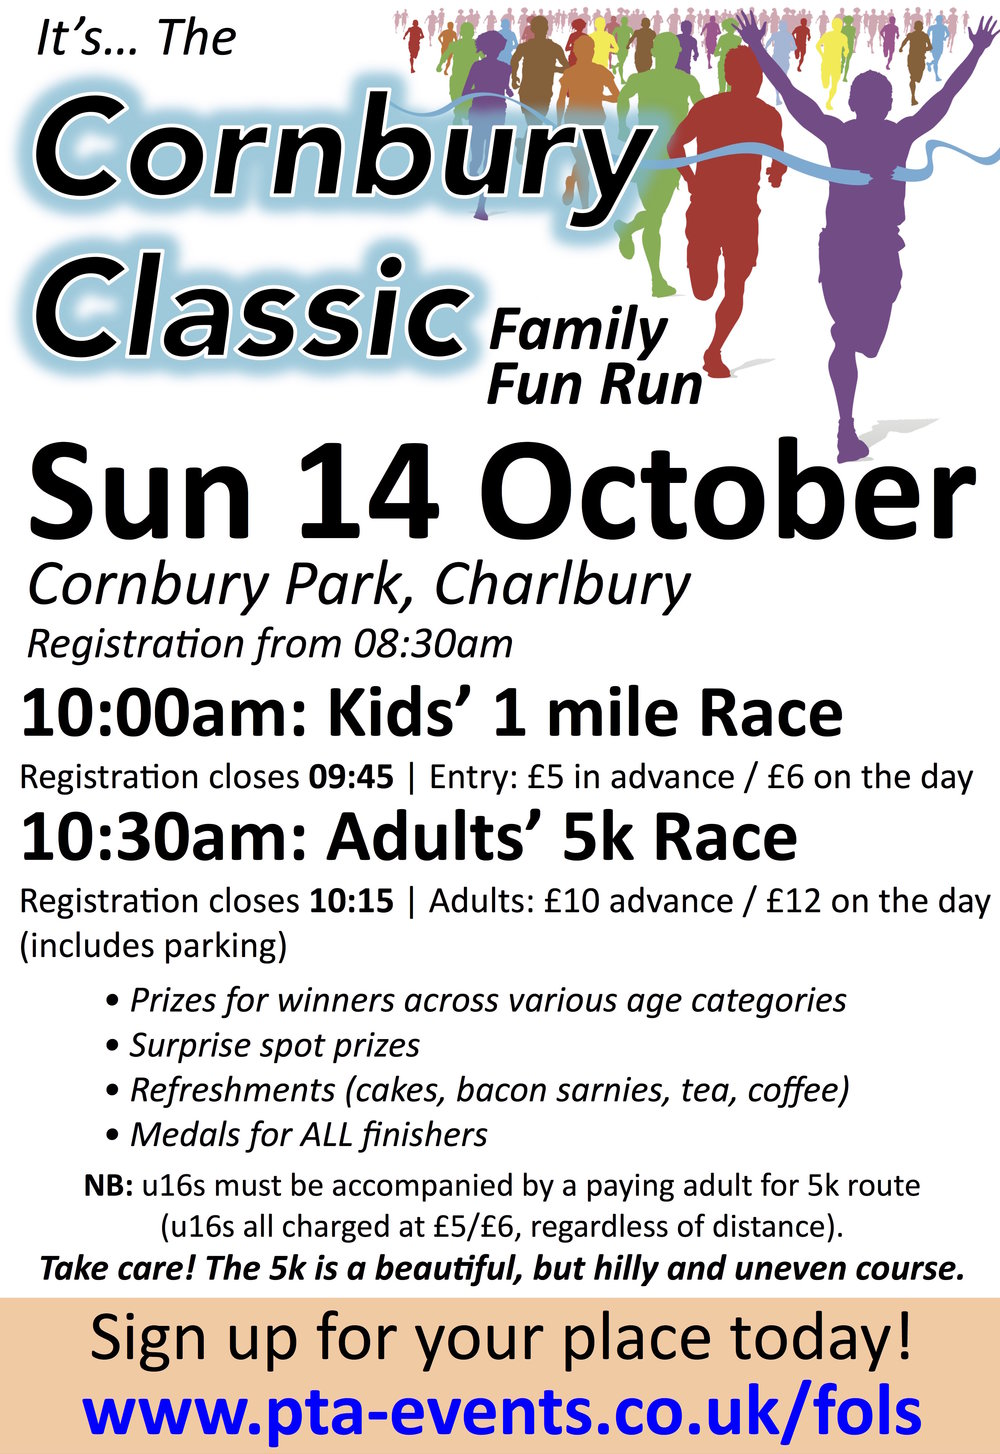 Cornbury Classic Fun Run 2018.jpg